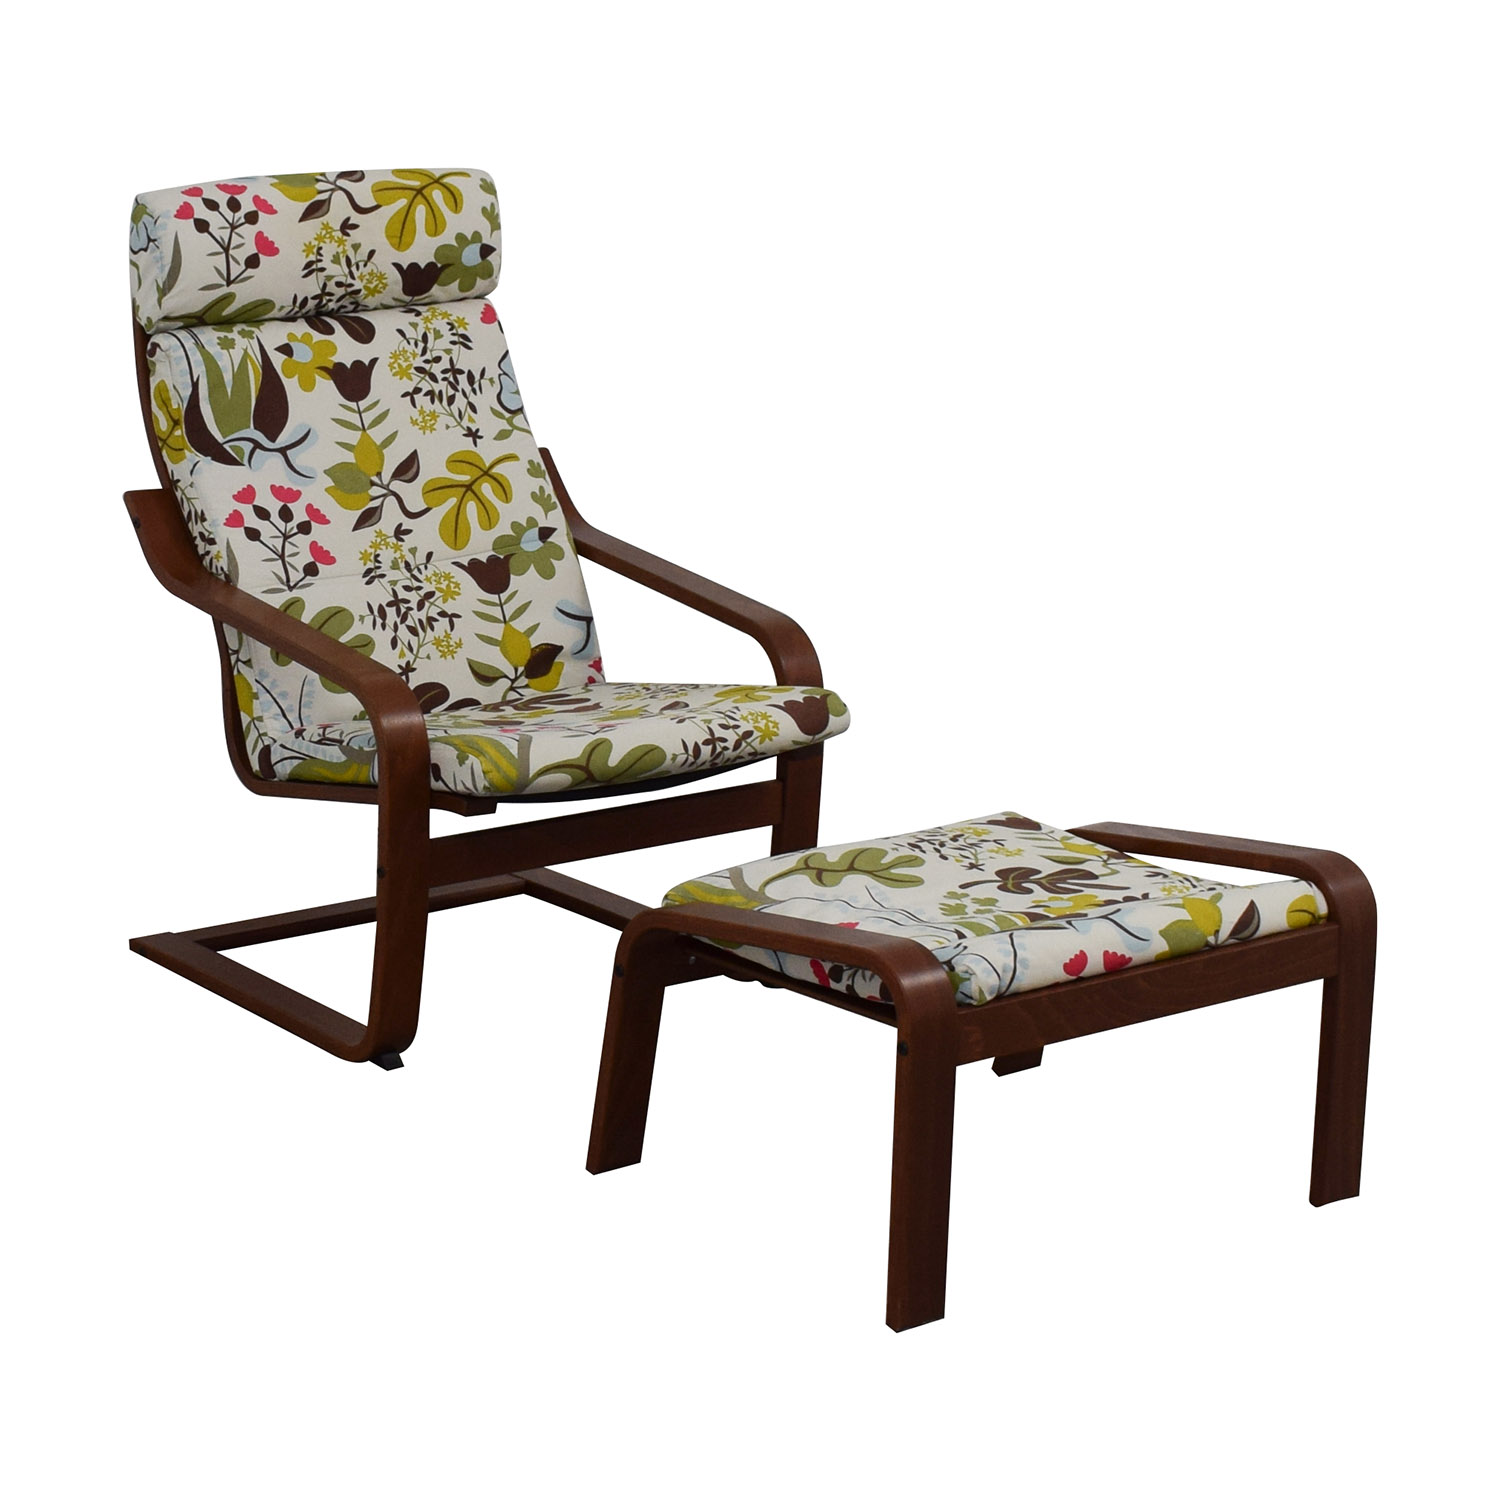 90 Off Ikea Ikea Poang Armchair And Ottoman Chairs